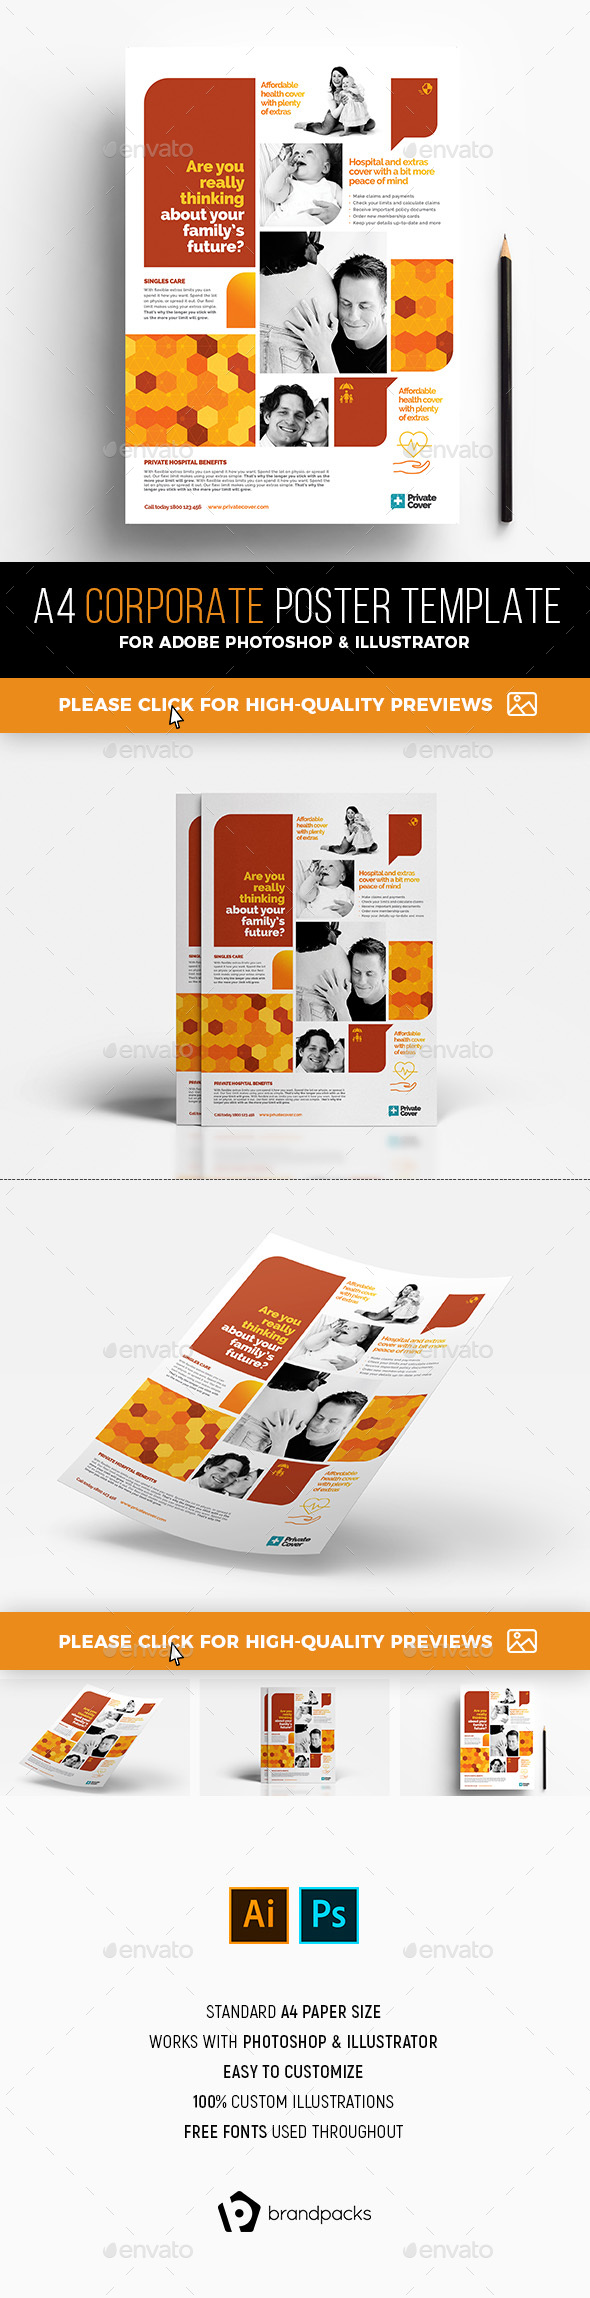 A4 Corporate Poster Template - Corporate Flyers